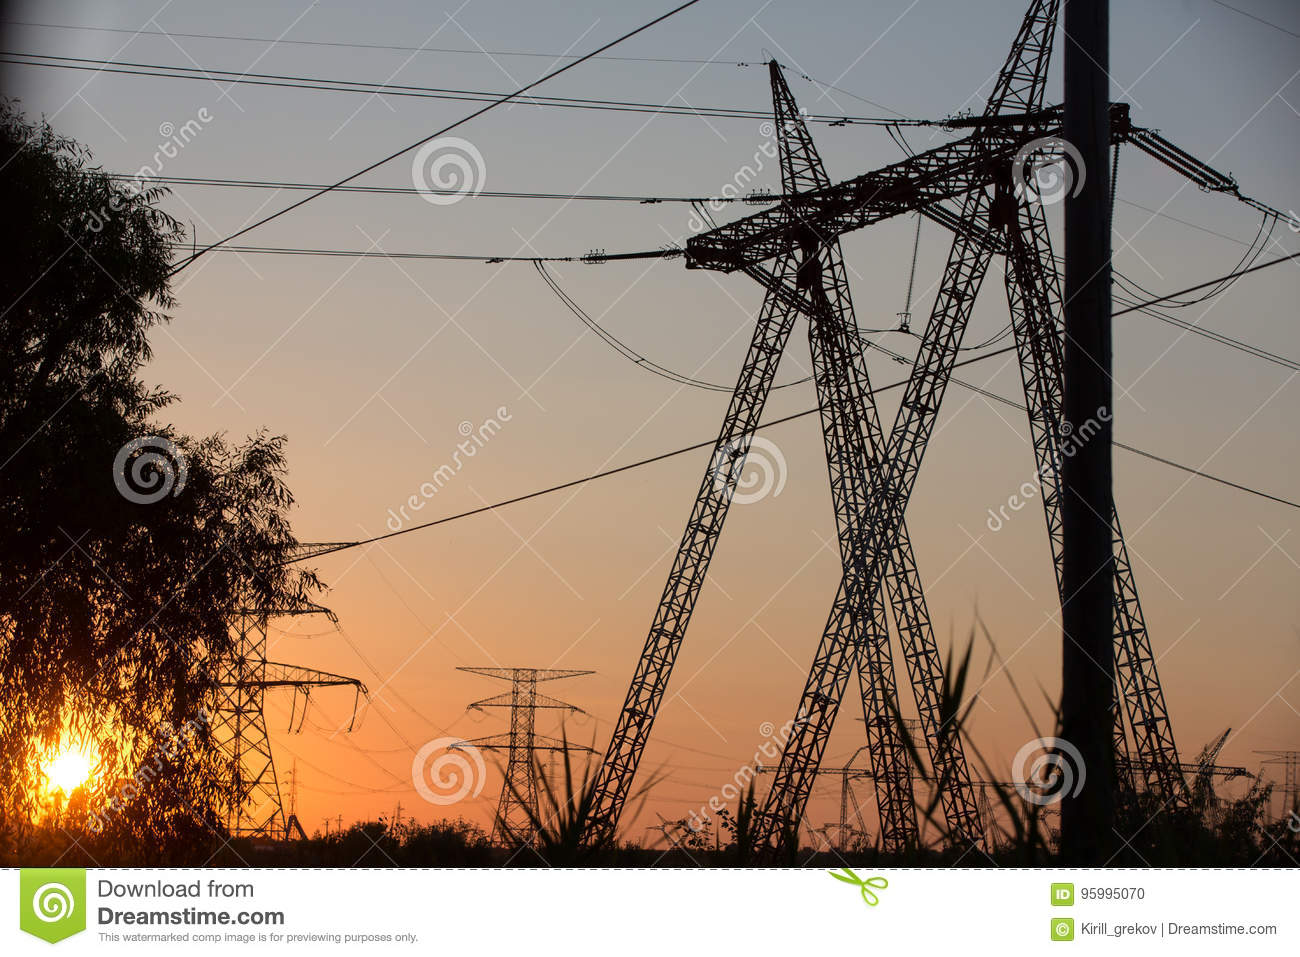 Transmission power line silhouette on sunset